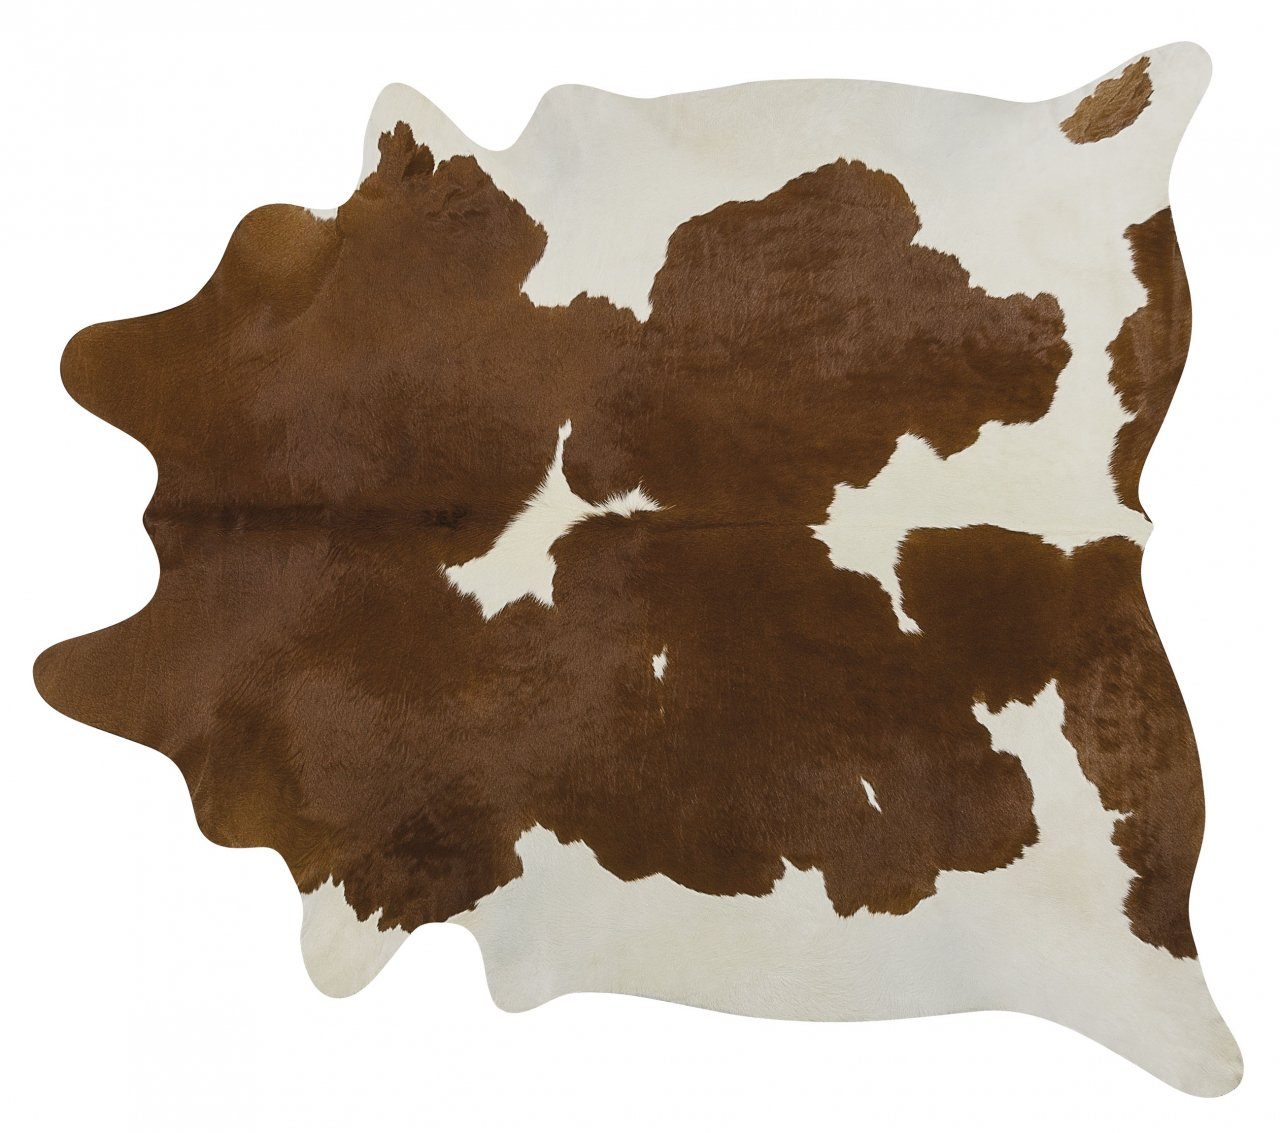 Brown and White Brazilian Cowhide Rug Cow Hide Area Rugs - Size LARGE